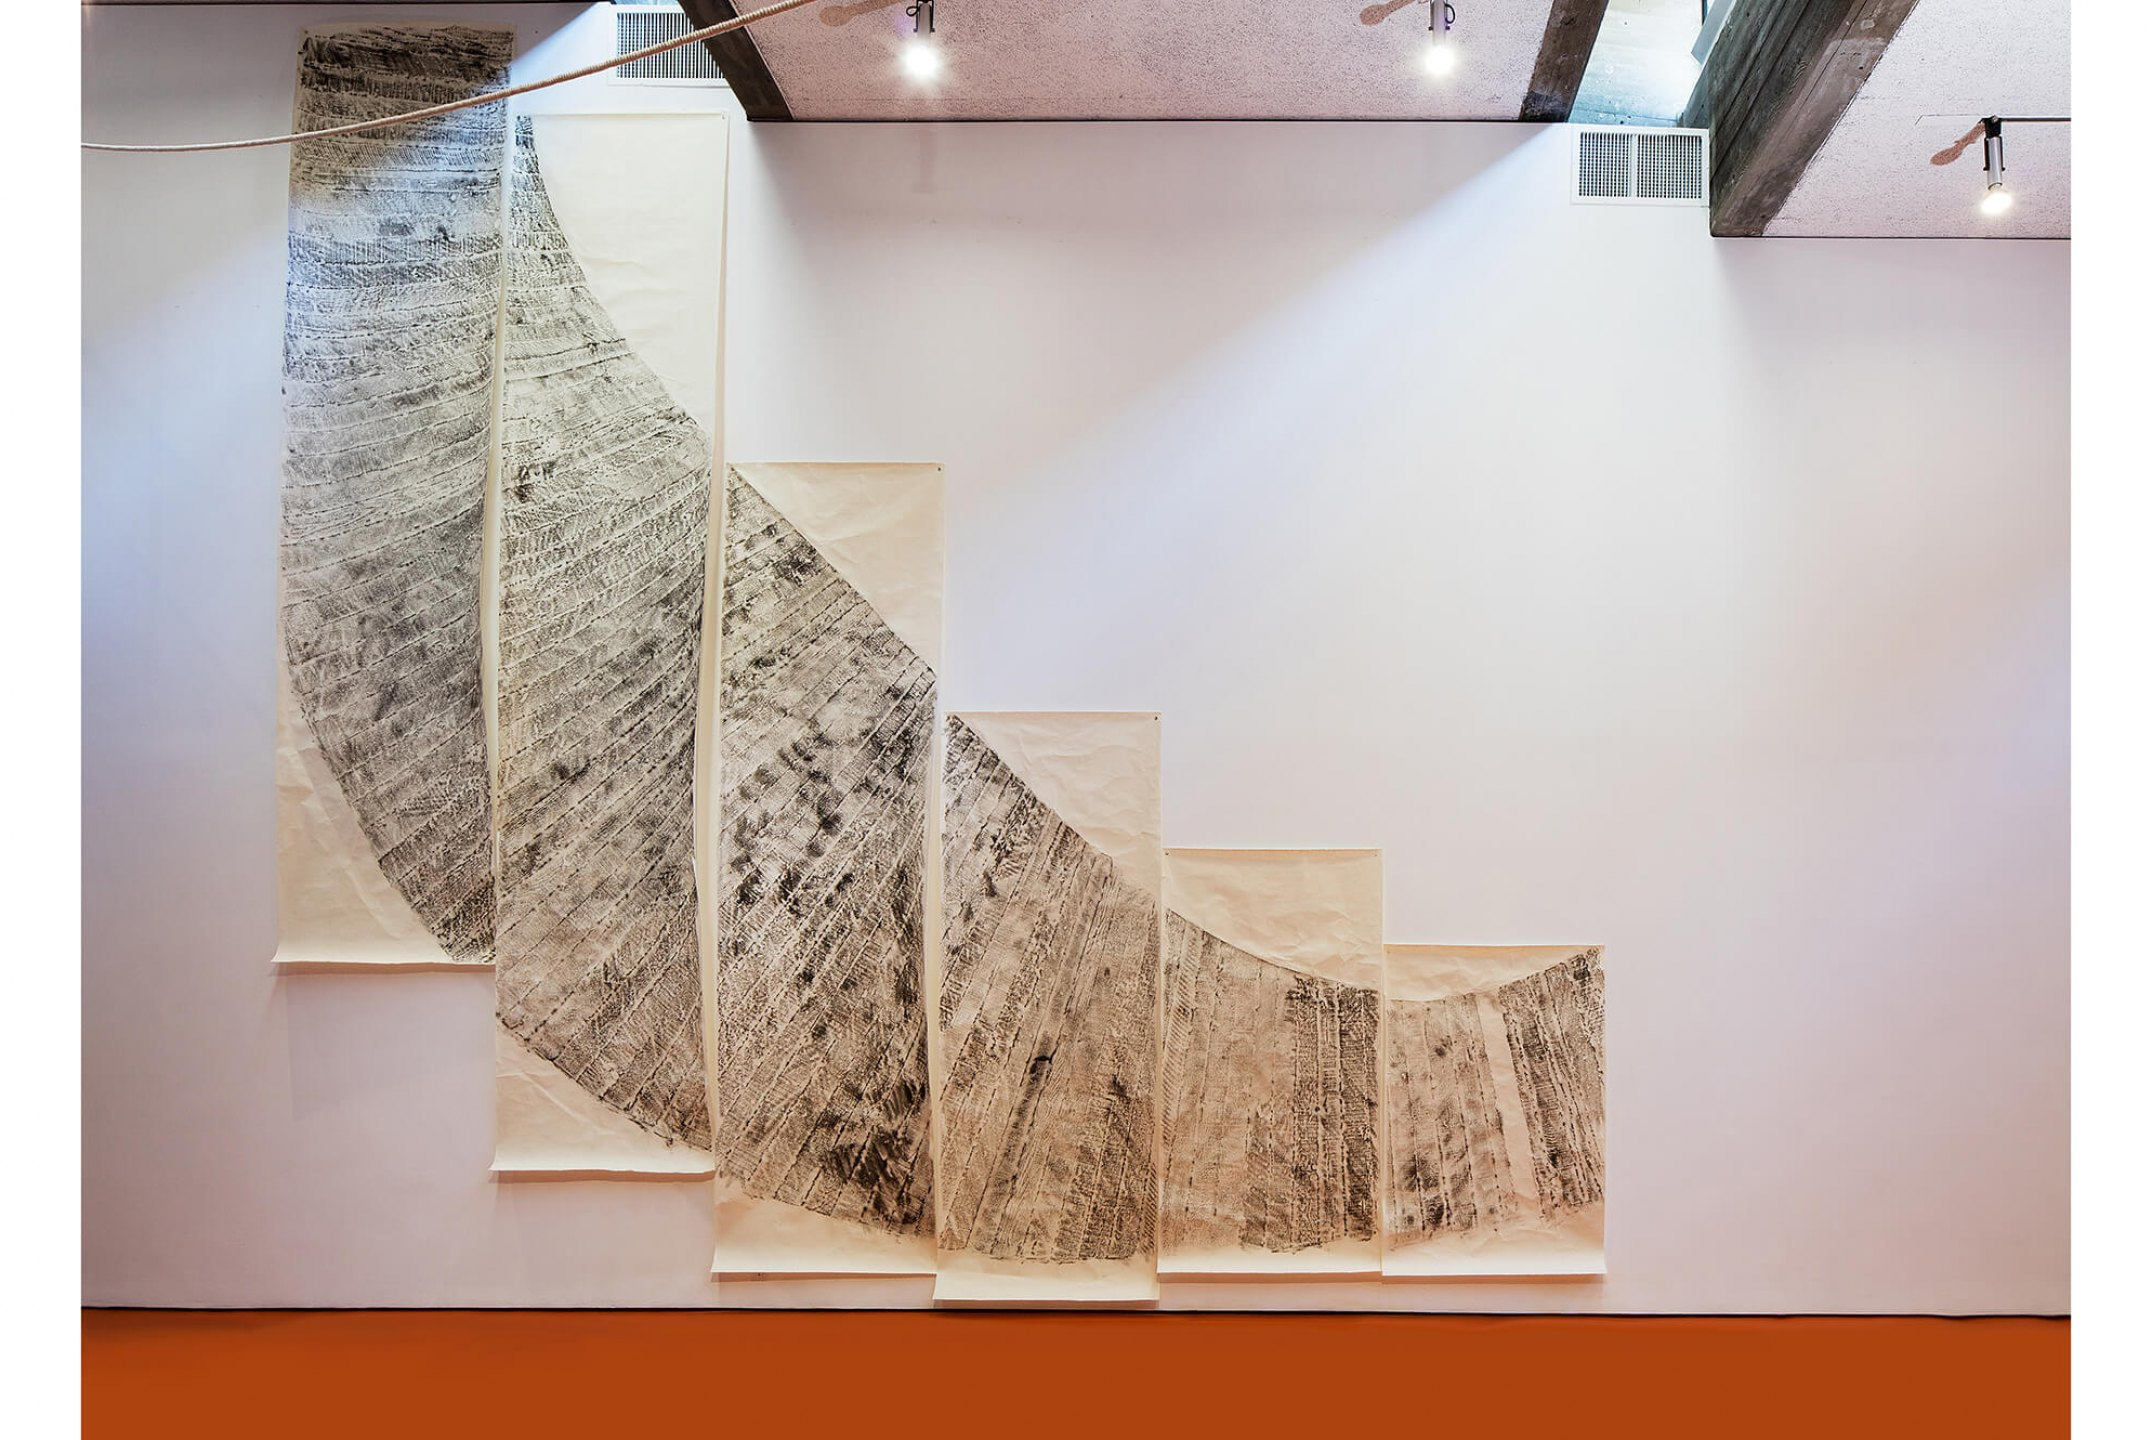 Mariana Castillo Deball, <em>Feathered Changes, Serpent Disappearances</em>, 2016, San Francisco Art Institute, San Francisco - Mendes Wood DM